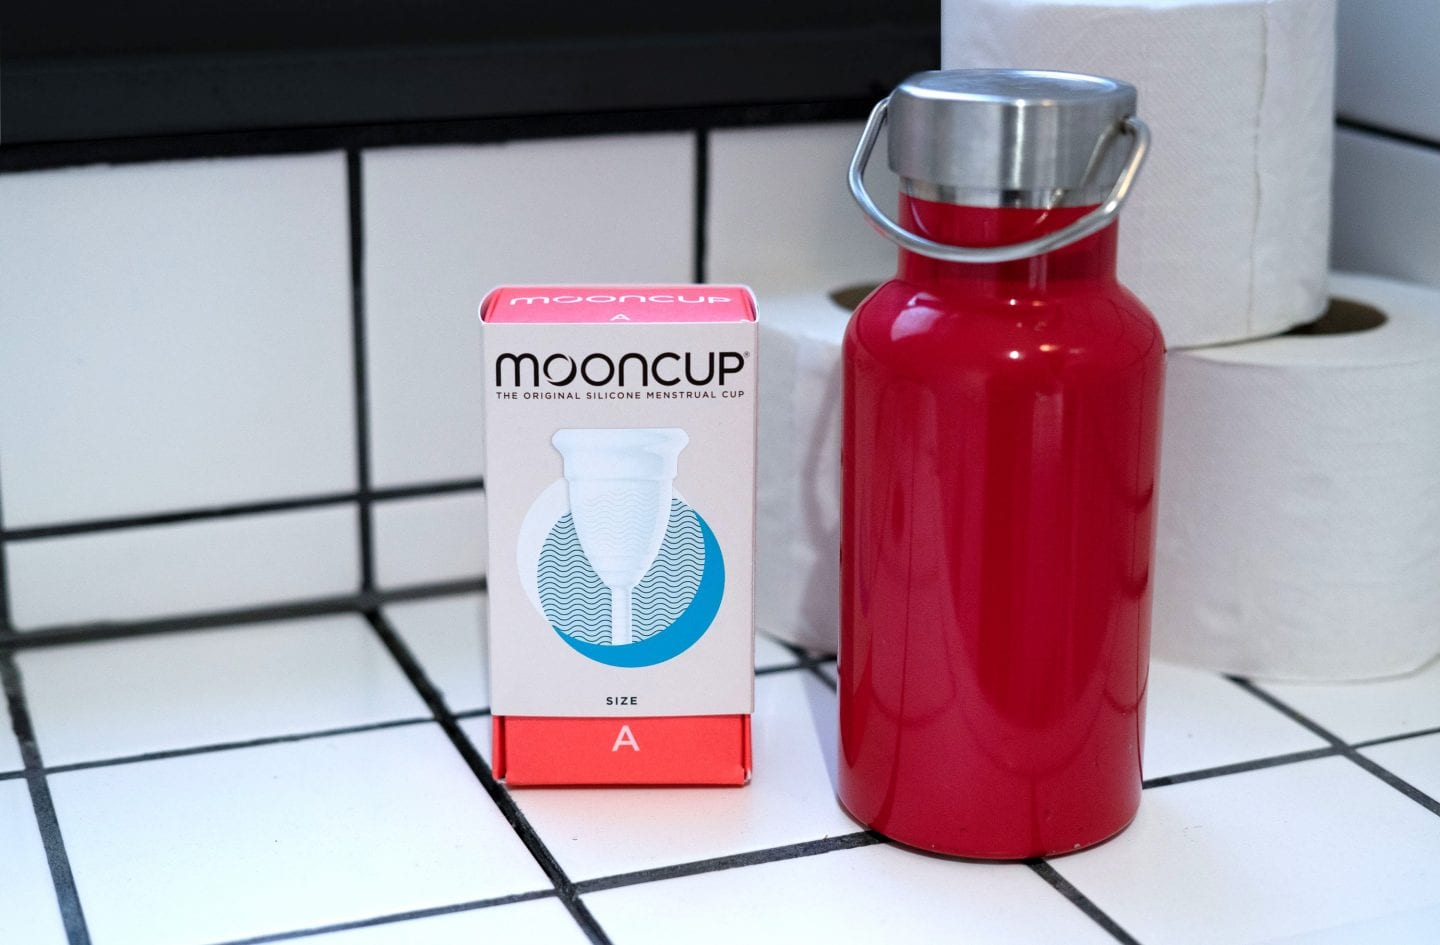 Mooncup in a public toilet next to a red reusable water bottle